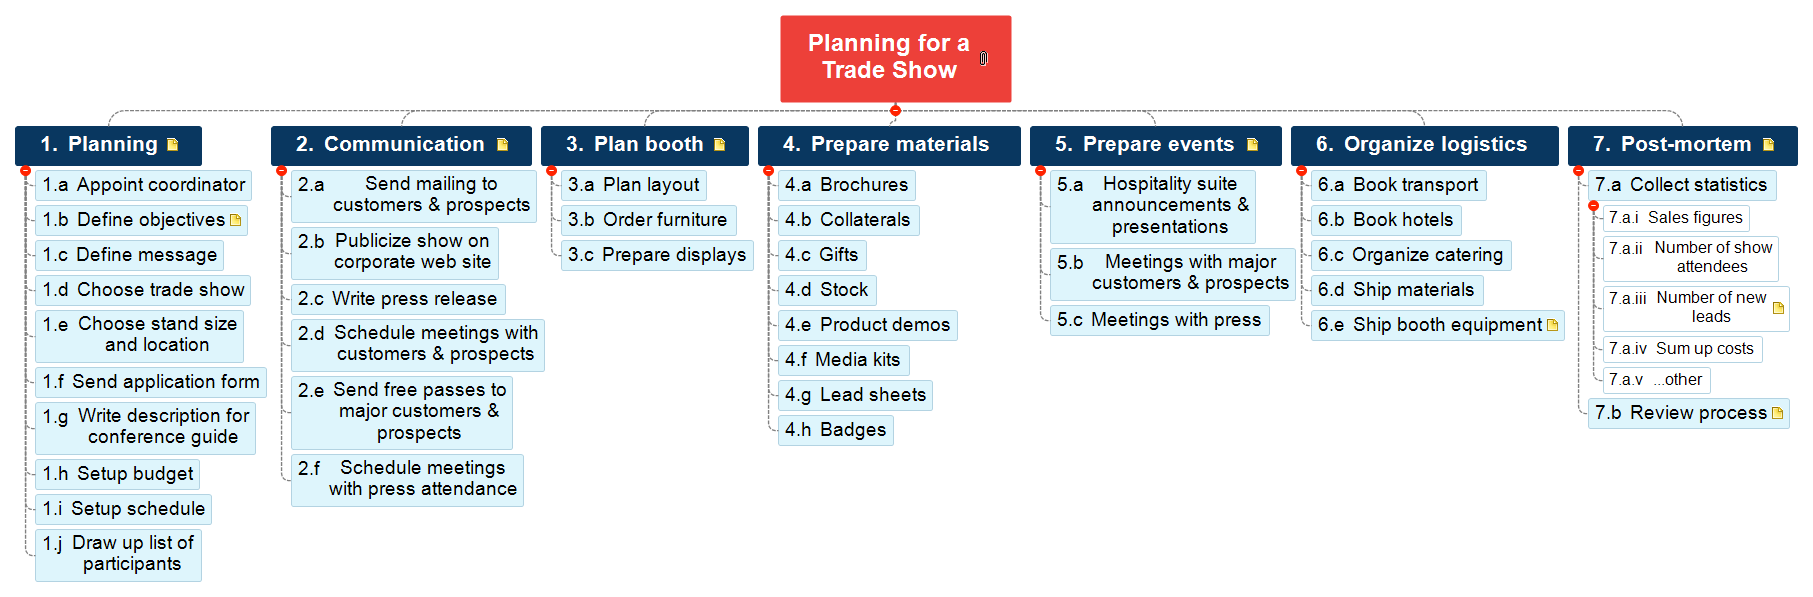 planning a tradeshow, wbs example, work breakdown structure